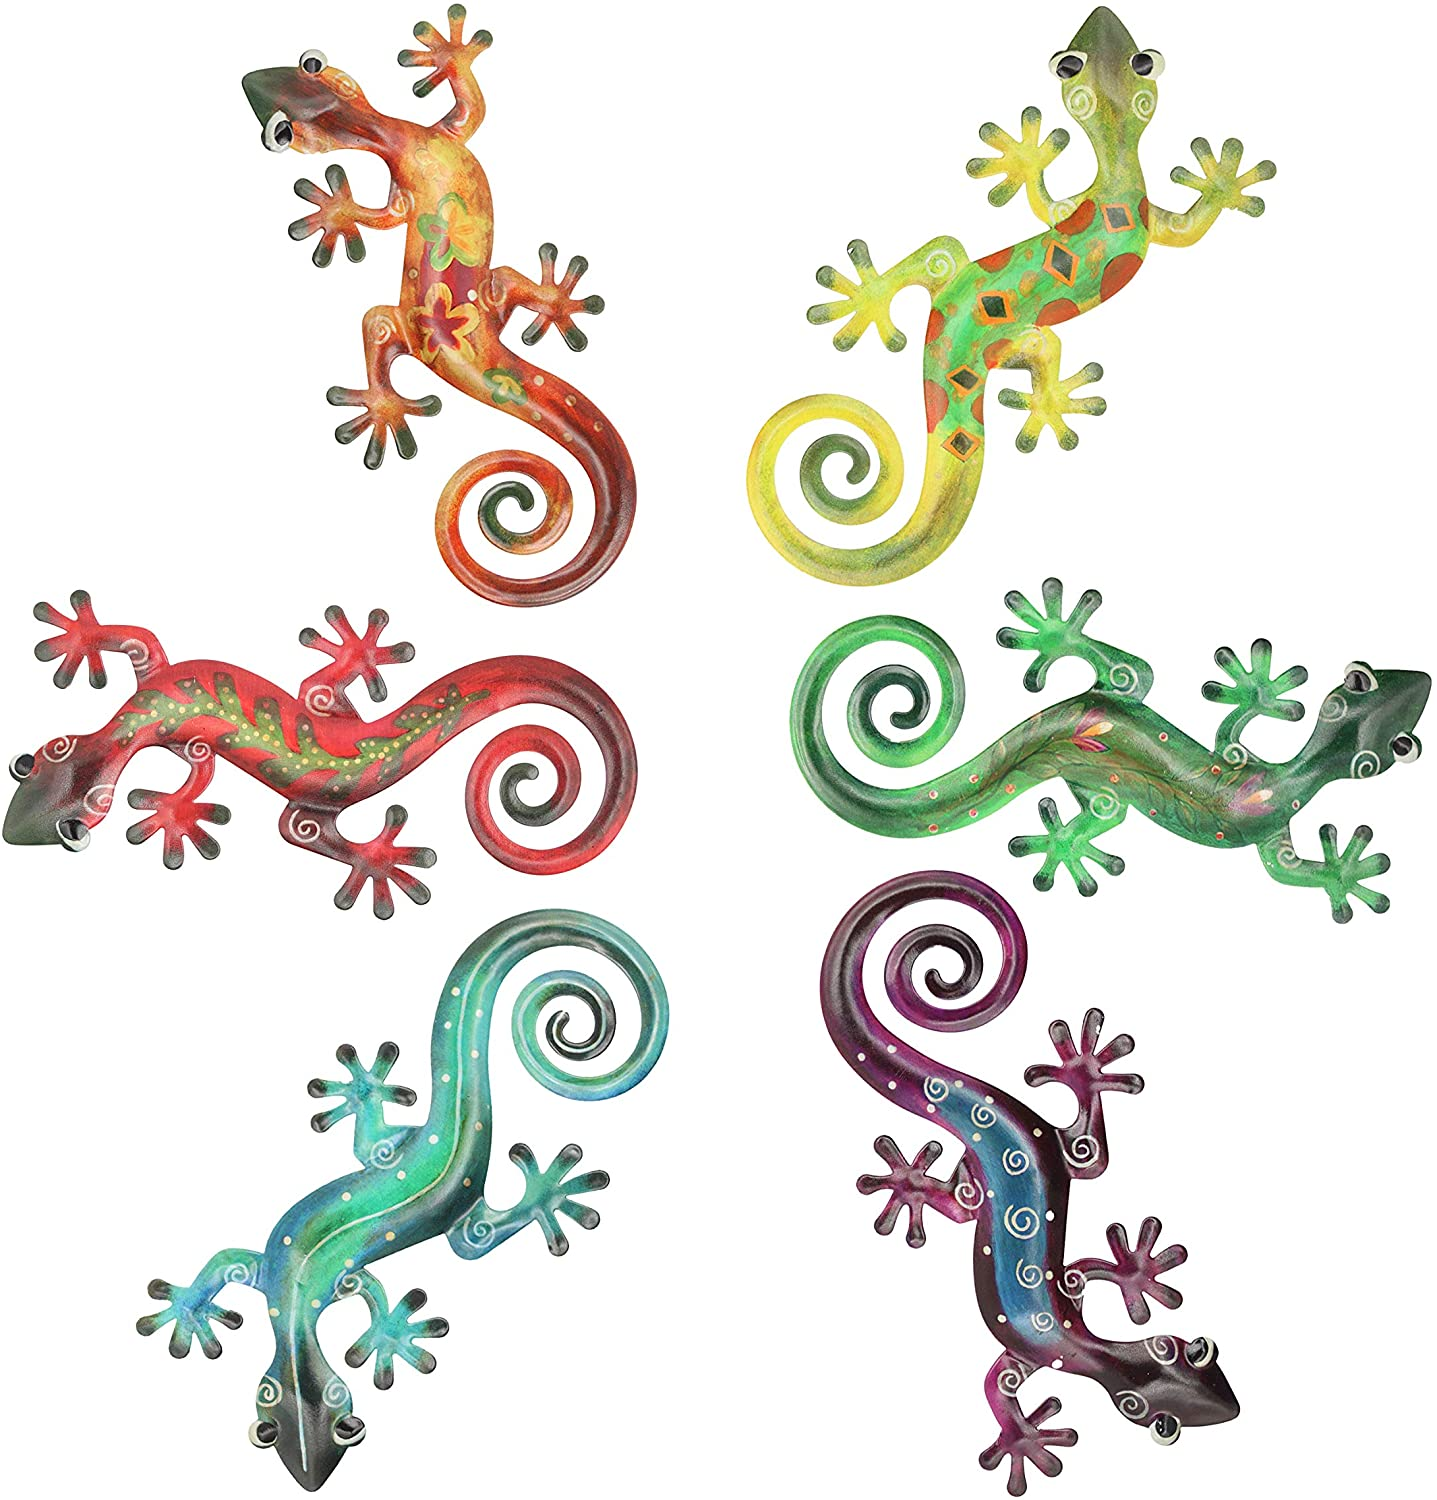 Hanizi Metal Gecko Wall Decor Wall Sculpture Hanging Art Indoor Outdoor, 6 Pack 8.5 x 6.1 inches